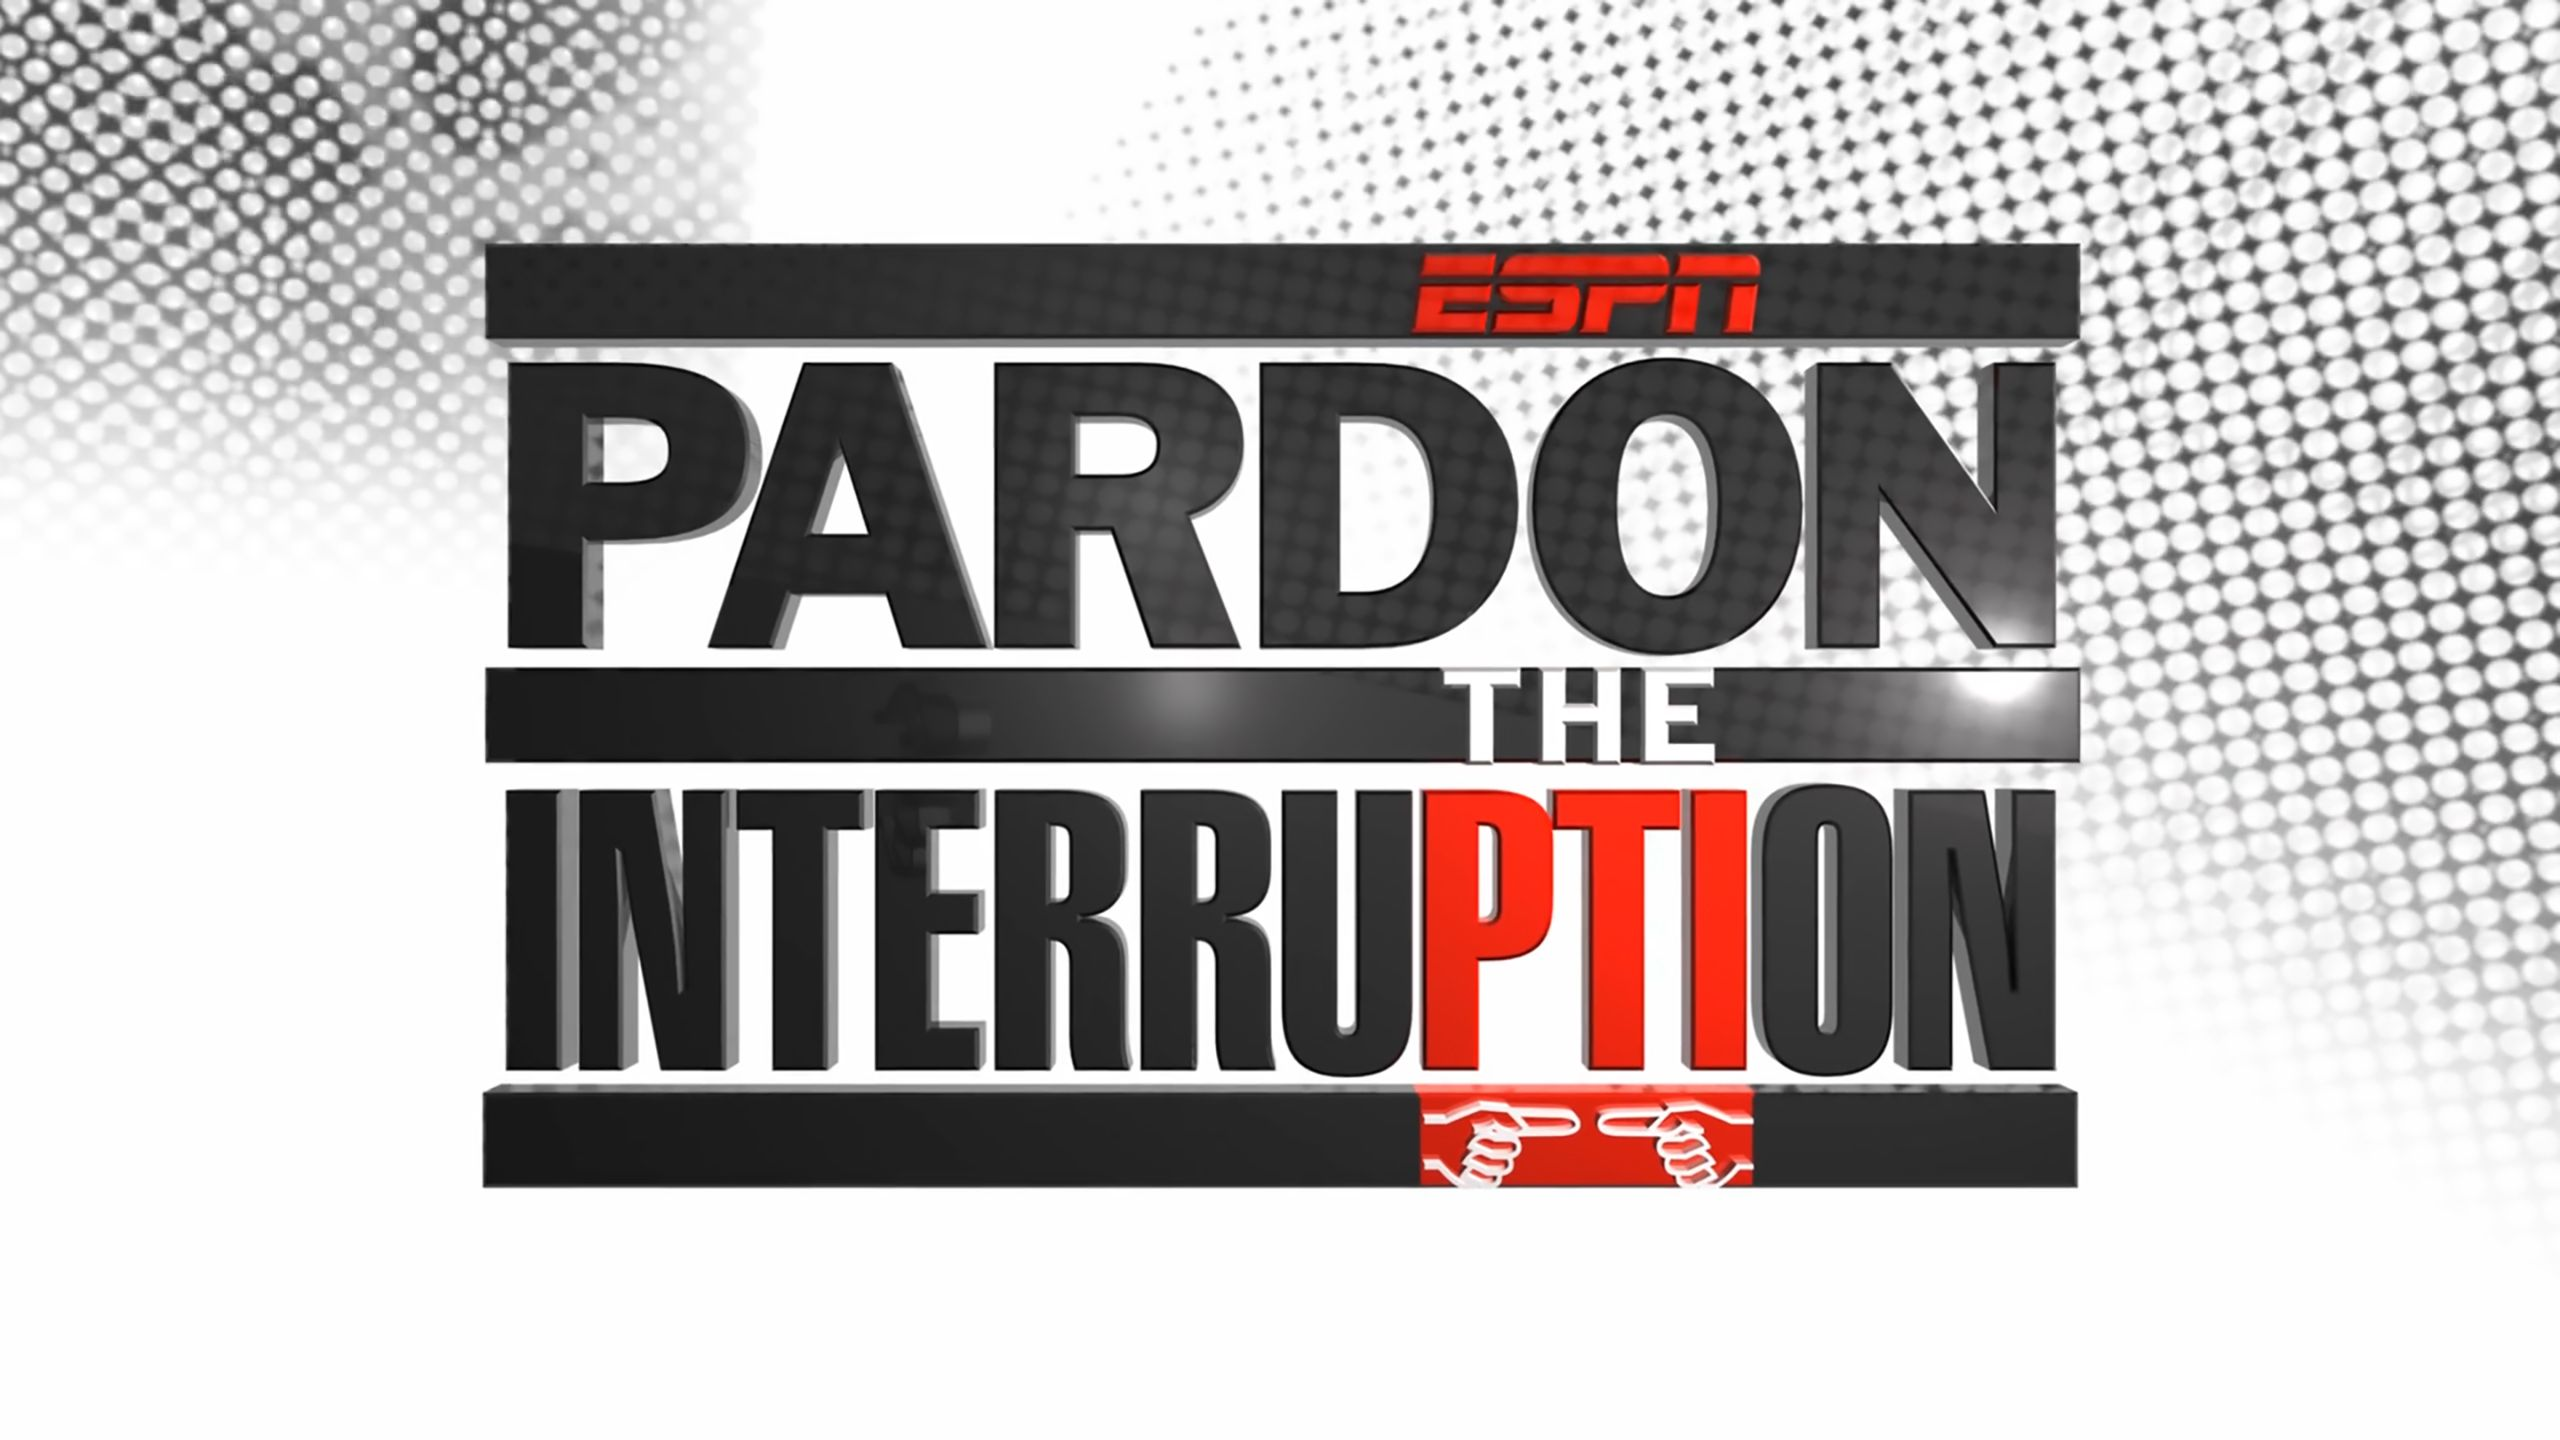 Fri, 3/23 - Pardon The Interruption